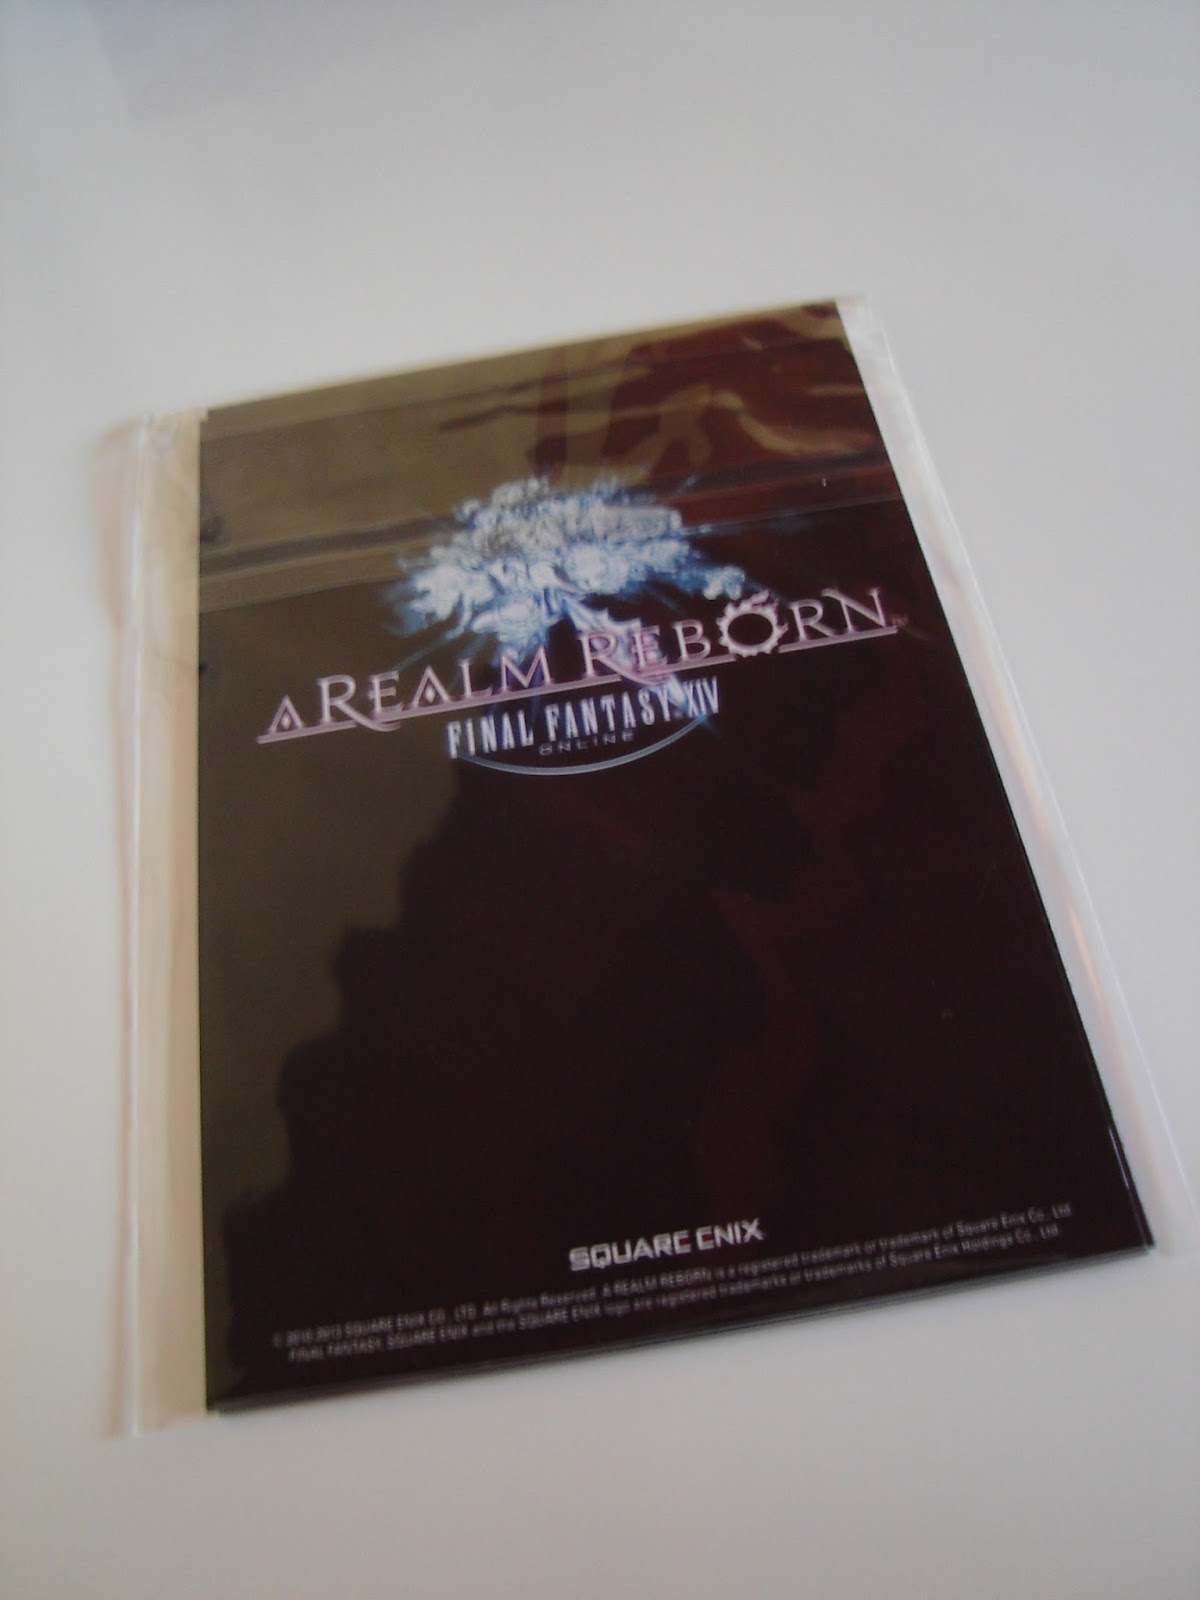 A Realm Reborn: Final Fantasy XIV Collector's Edition PAL